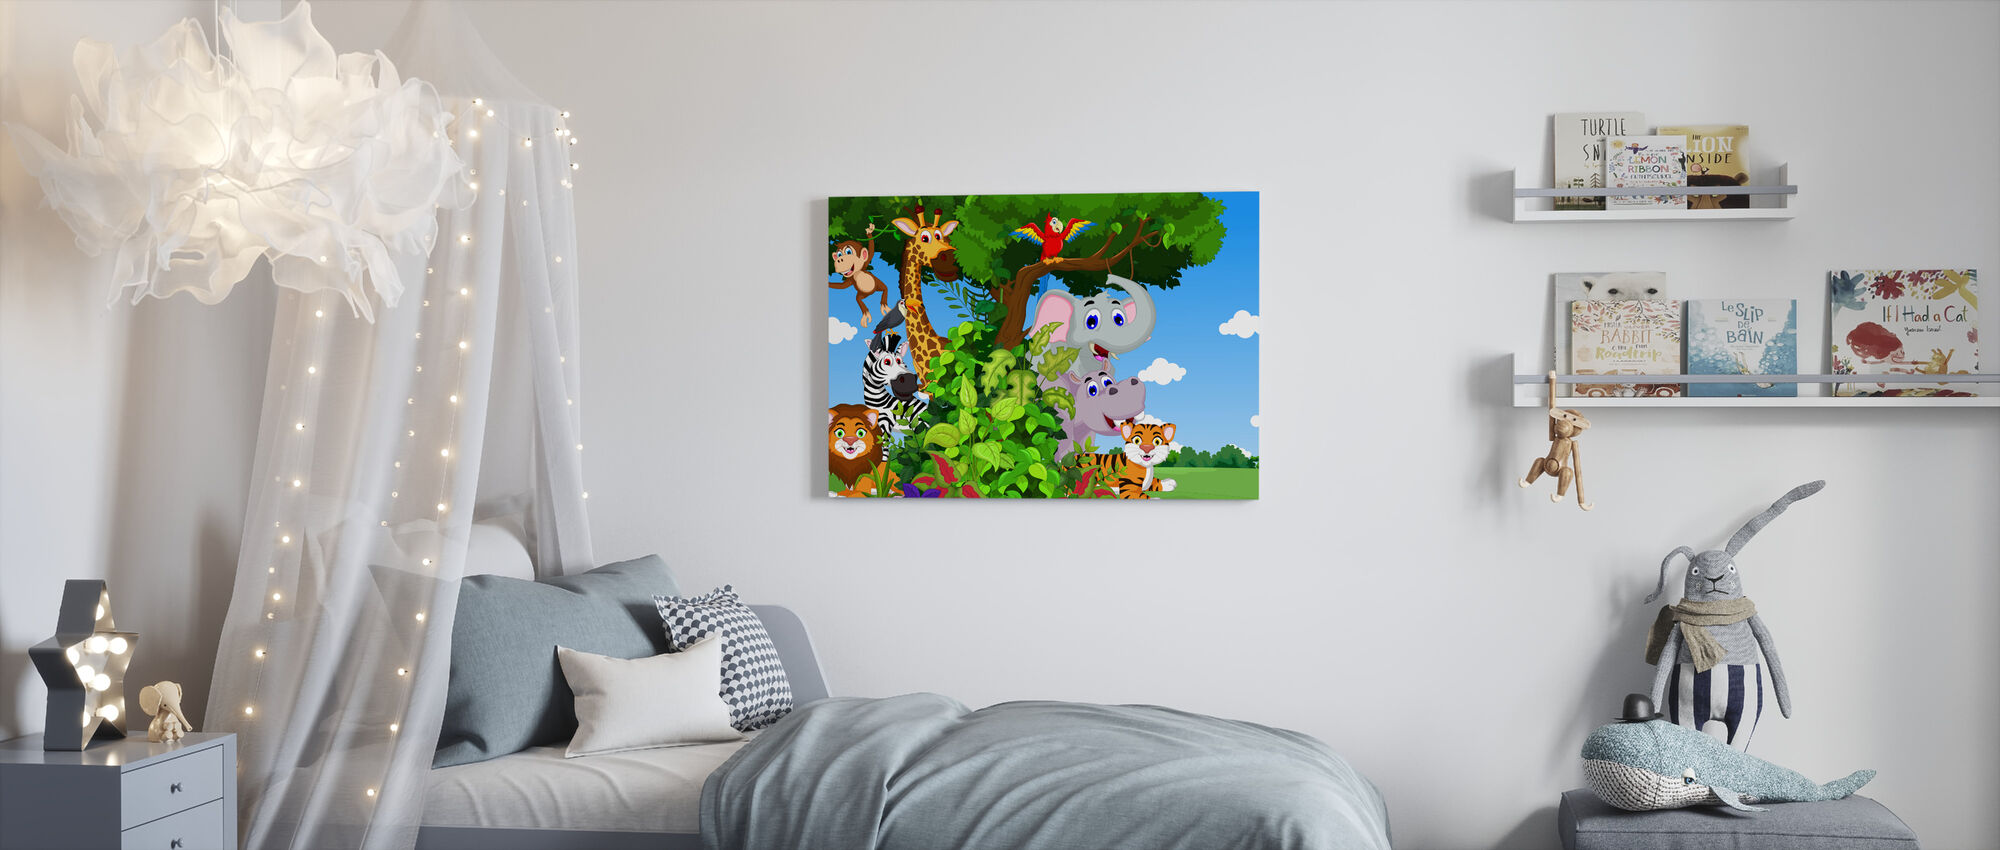 Animals in Forest Cartoon - Canvas print - Kids Room